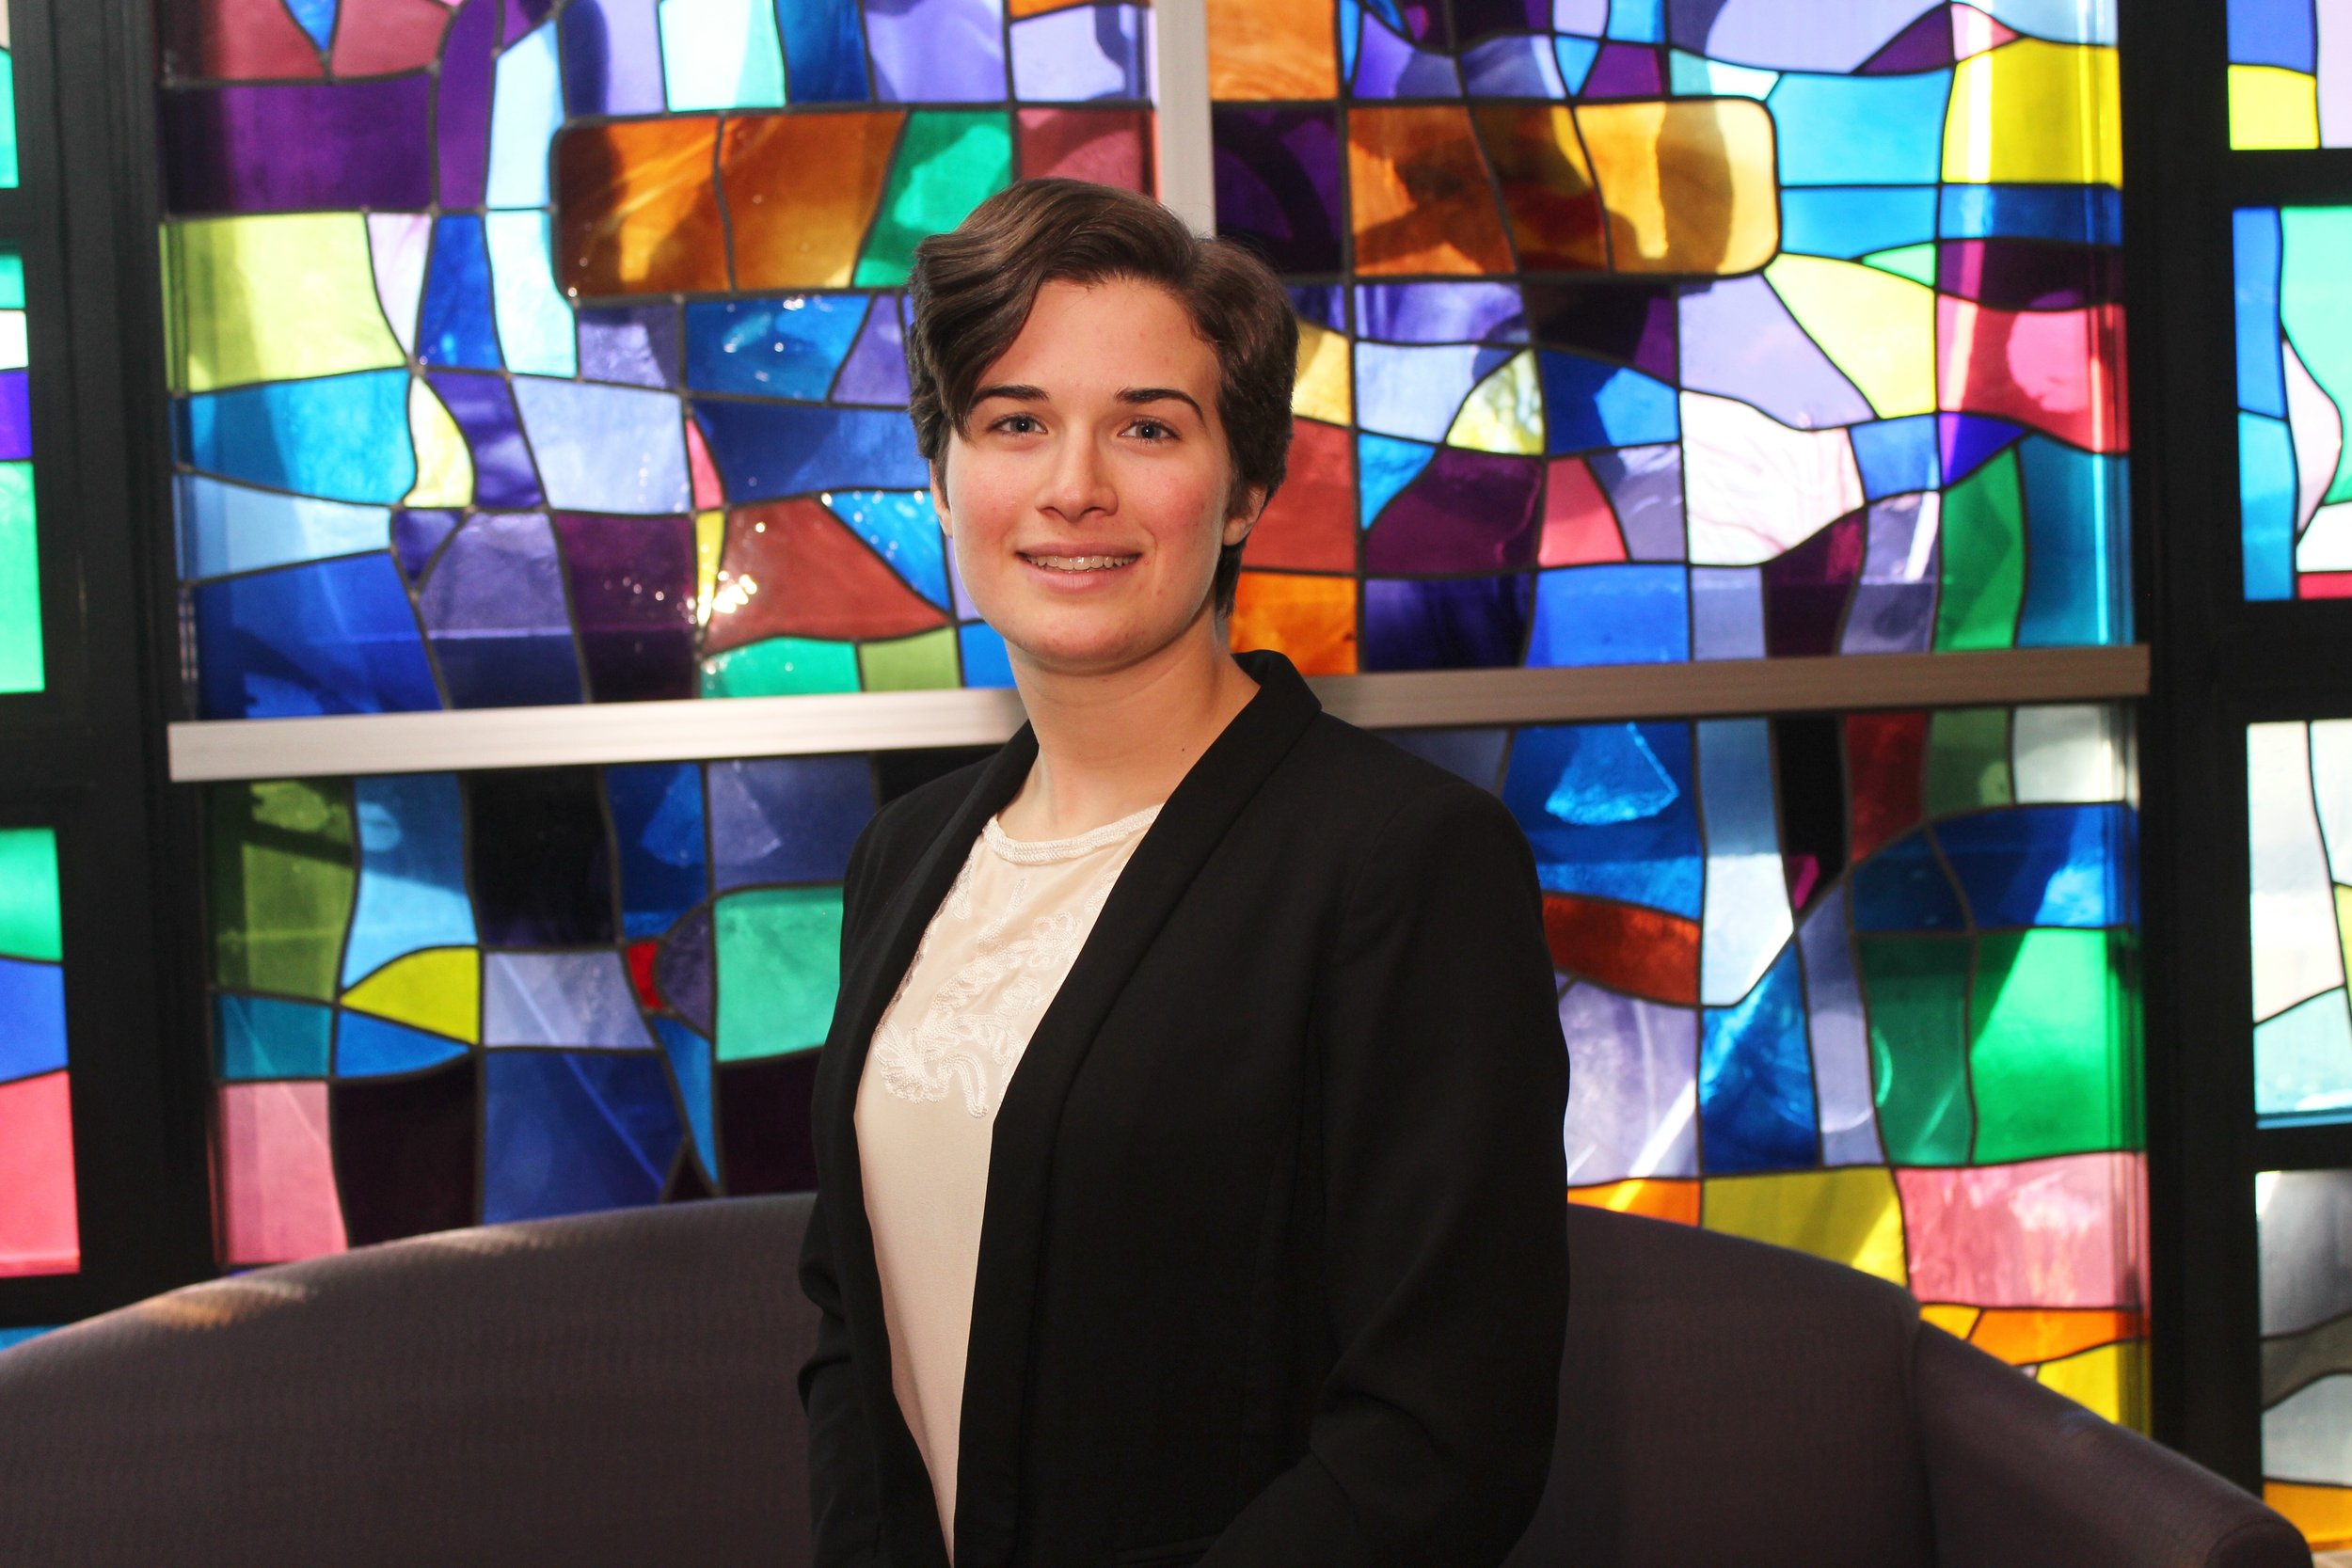 Christa Howarth (Photo by The University of Scranton)